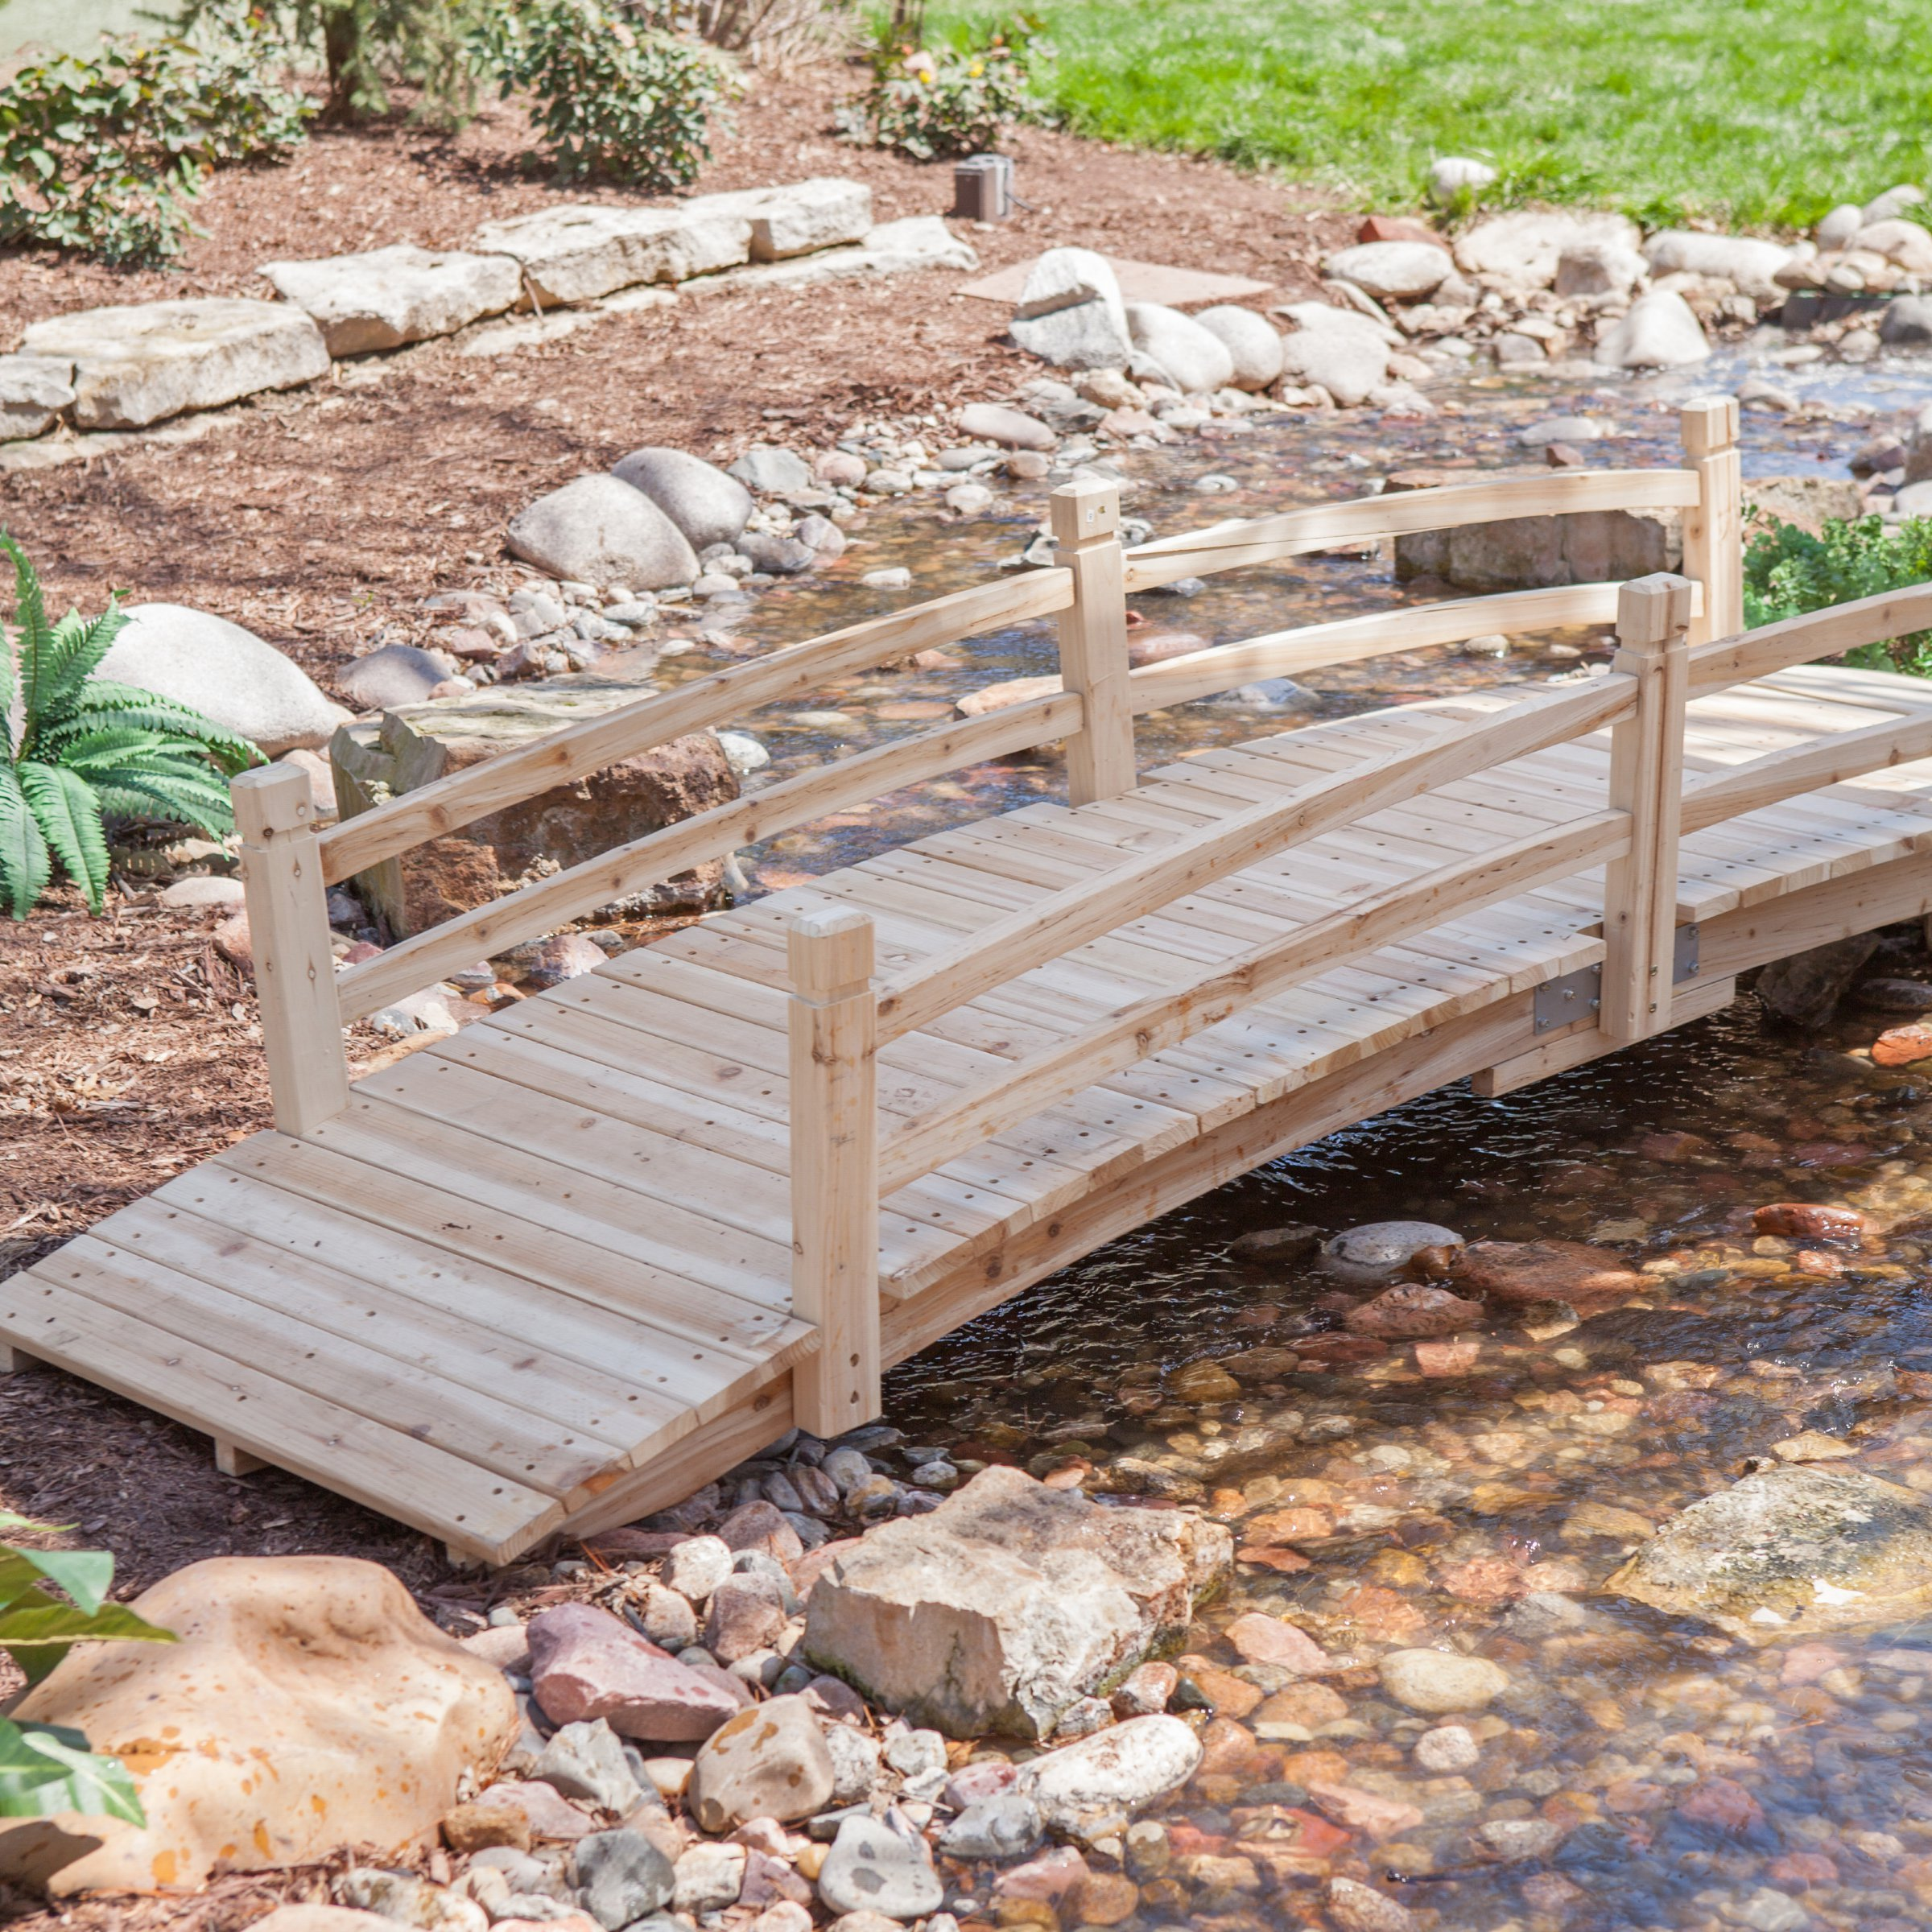 Attractive Design, Weather-Resistant 10-ft. Wood Garden Bridge with Rails - Assembly Required by Coral Coast